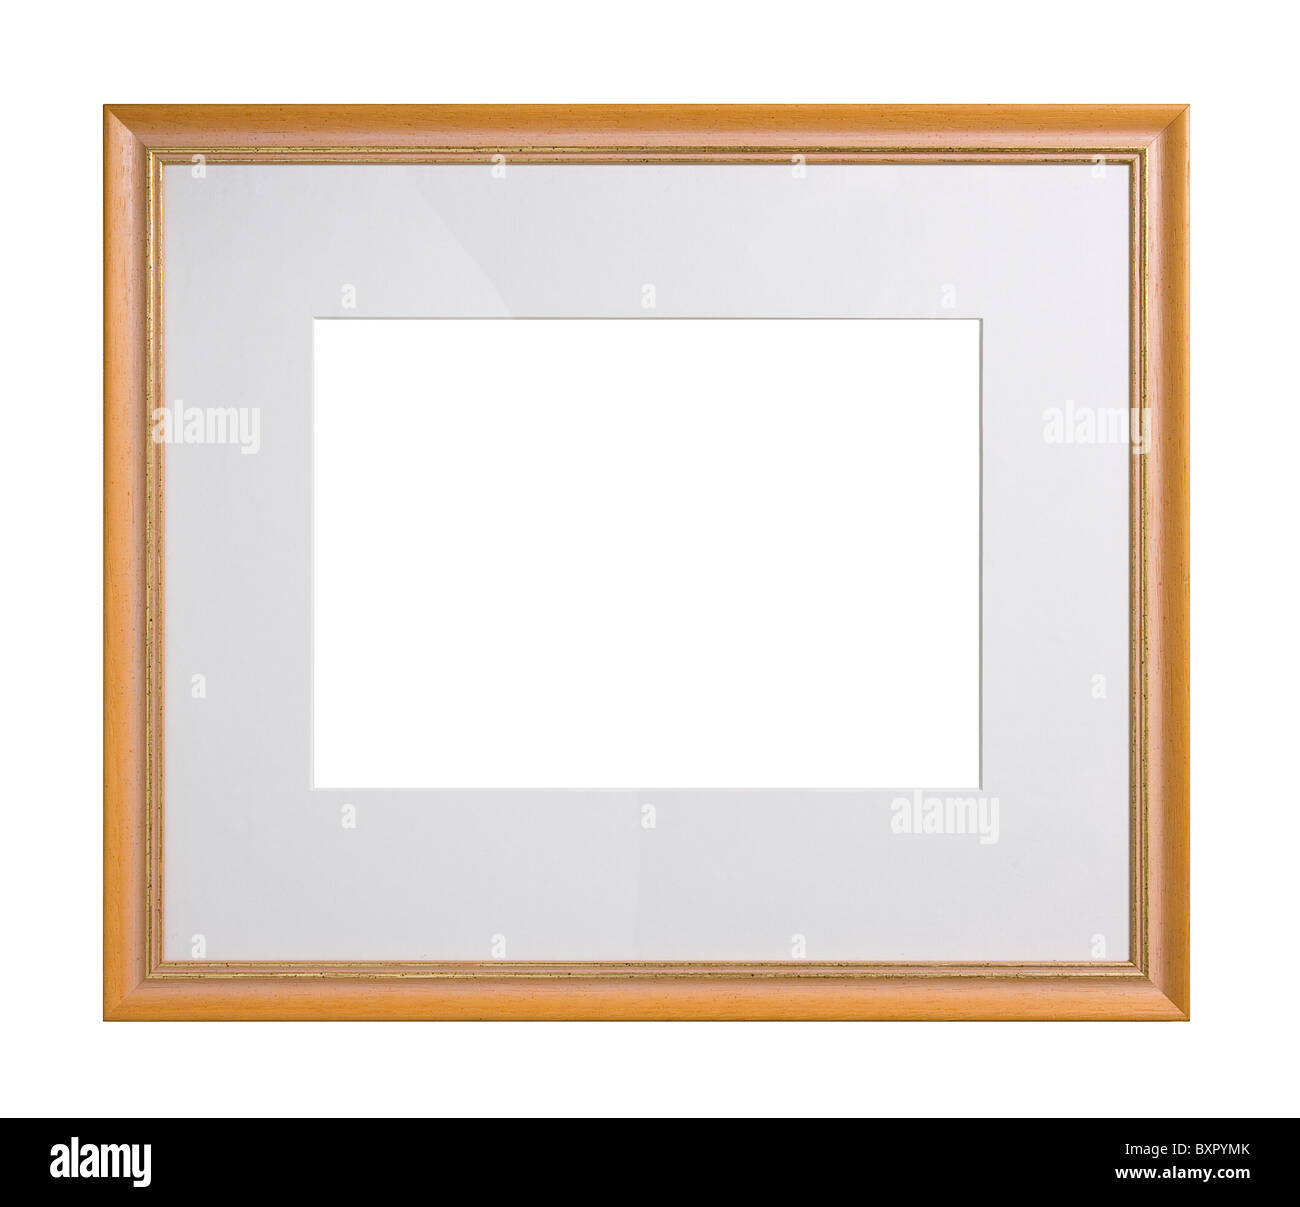 Picture Frame Cut Out Gold Stock Photos & Picture Frame Cut Out Gold ...